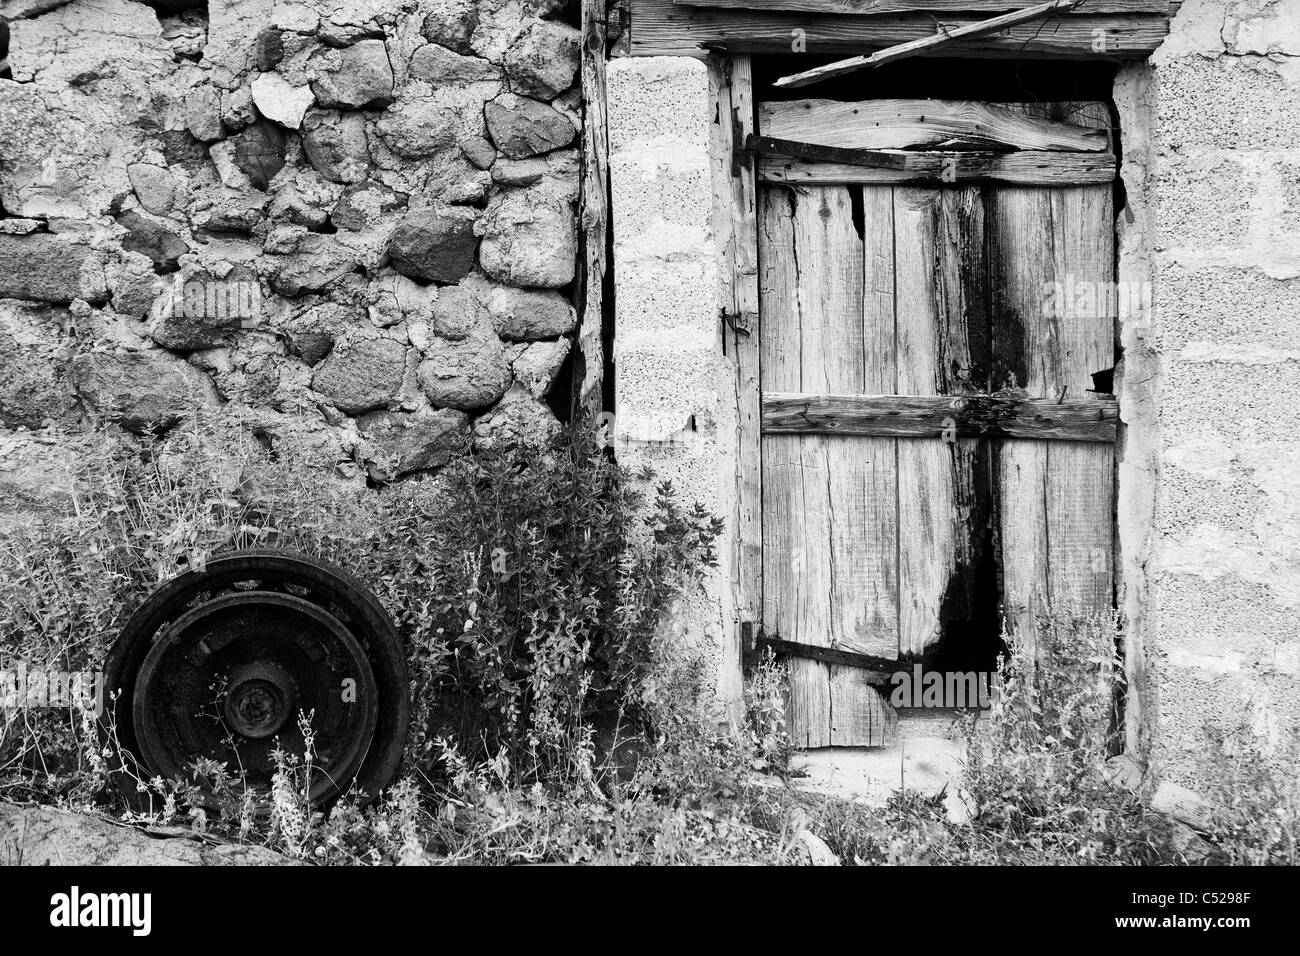 Still Life Image Of An Old Traditional Wooden Barn Door Stock Photo